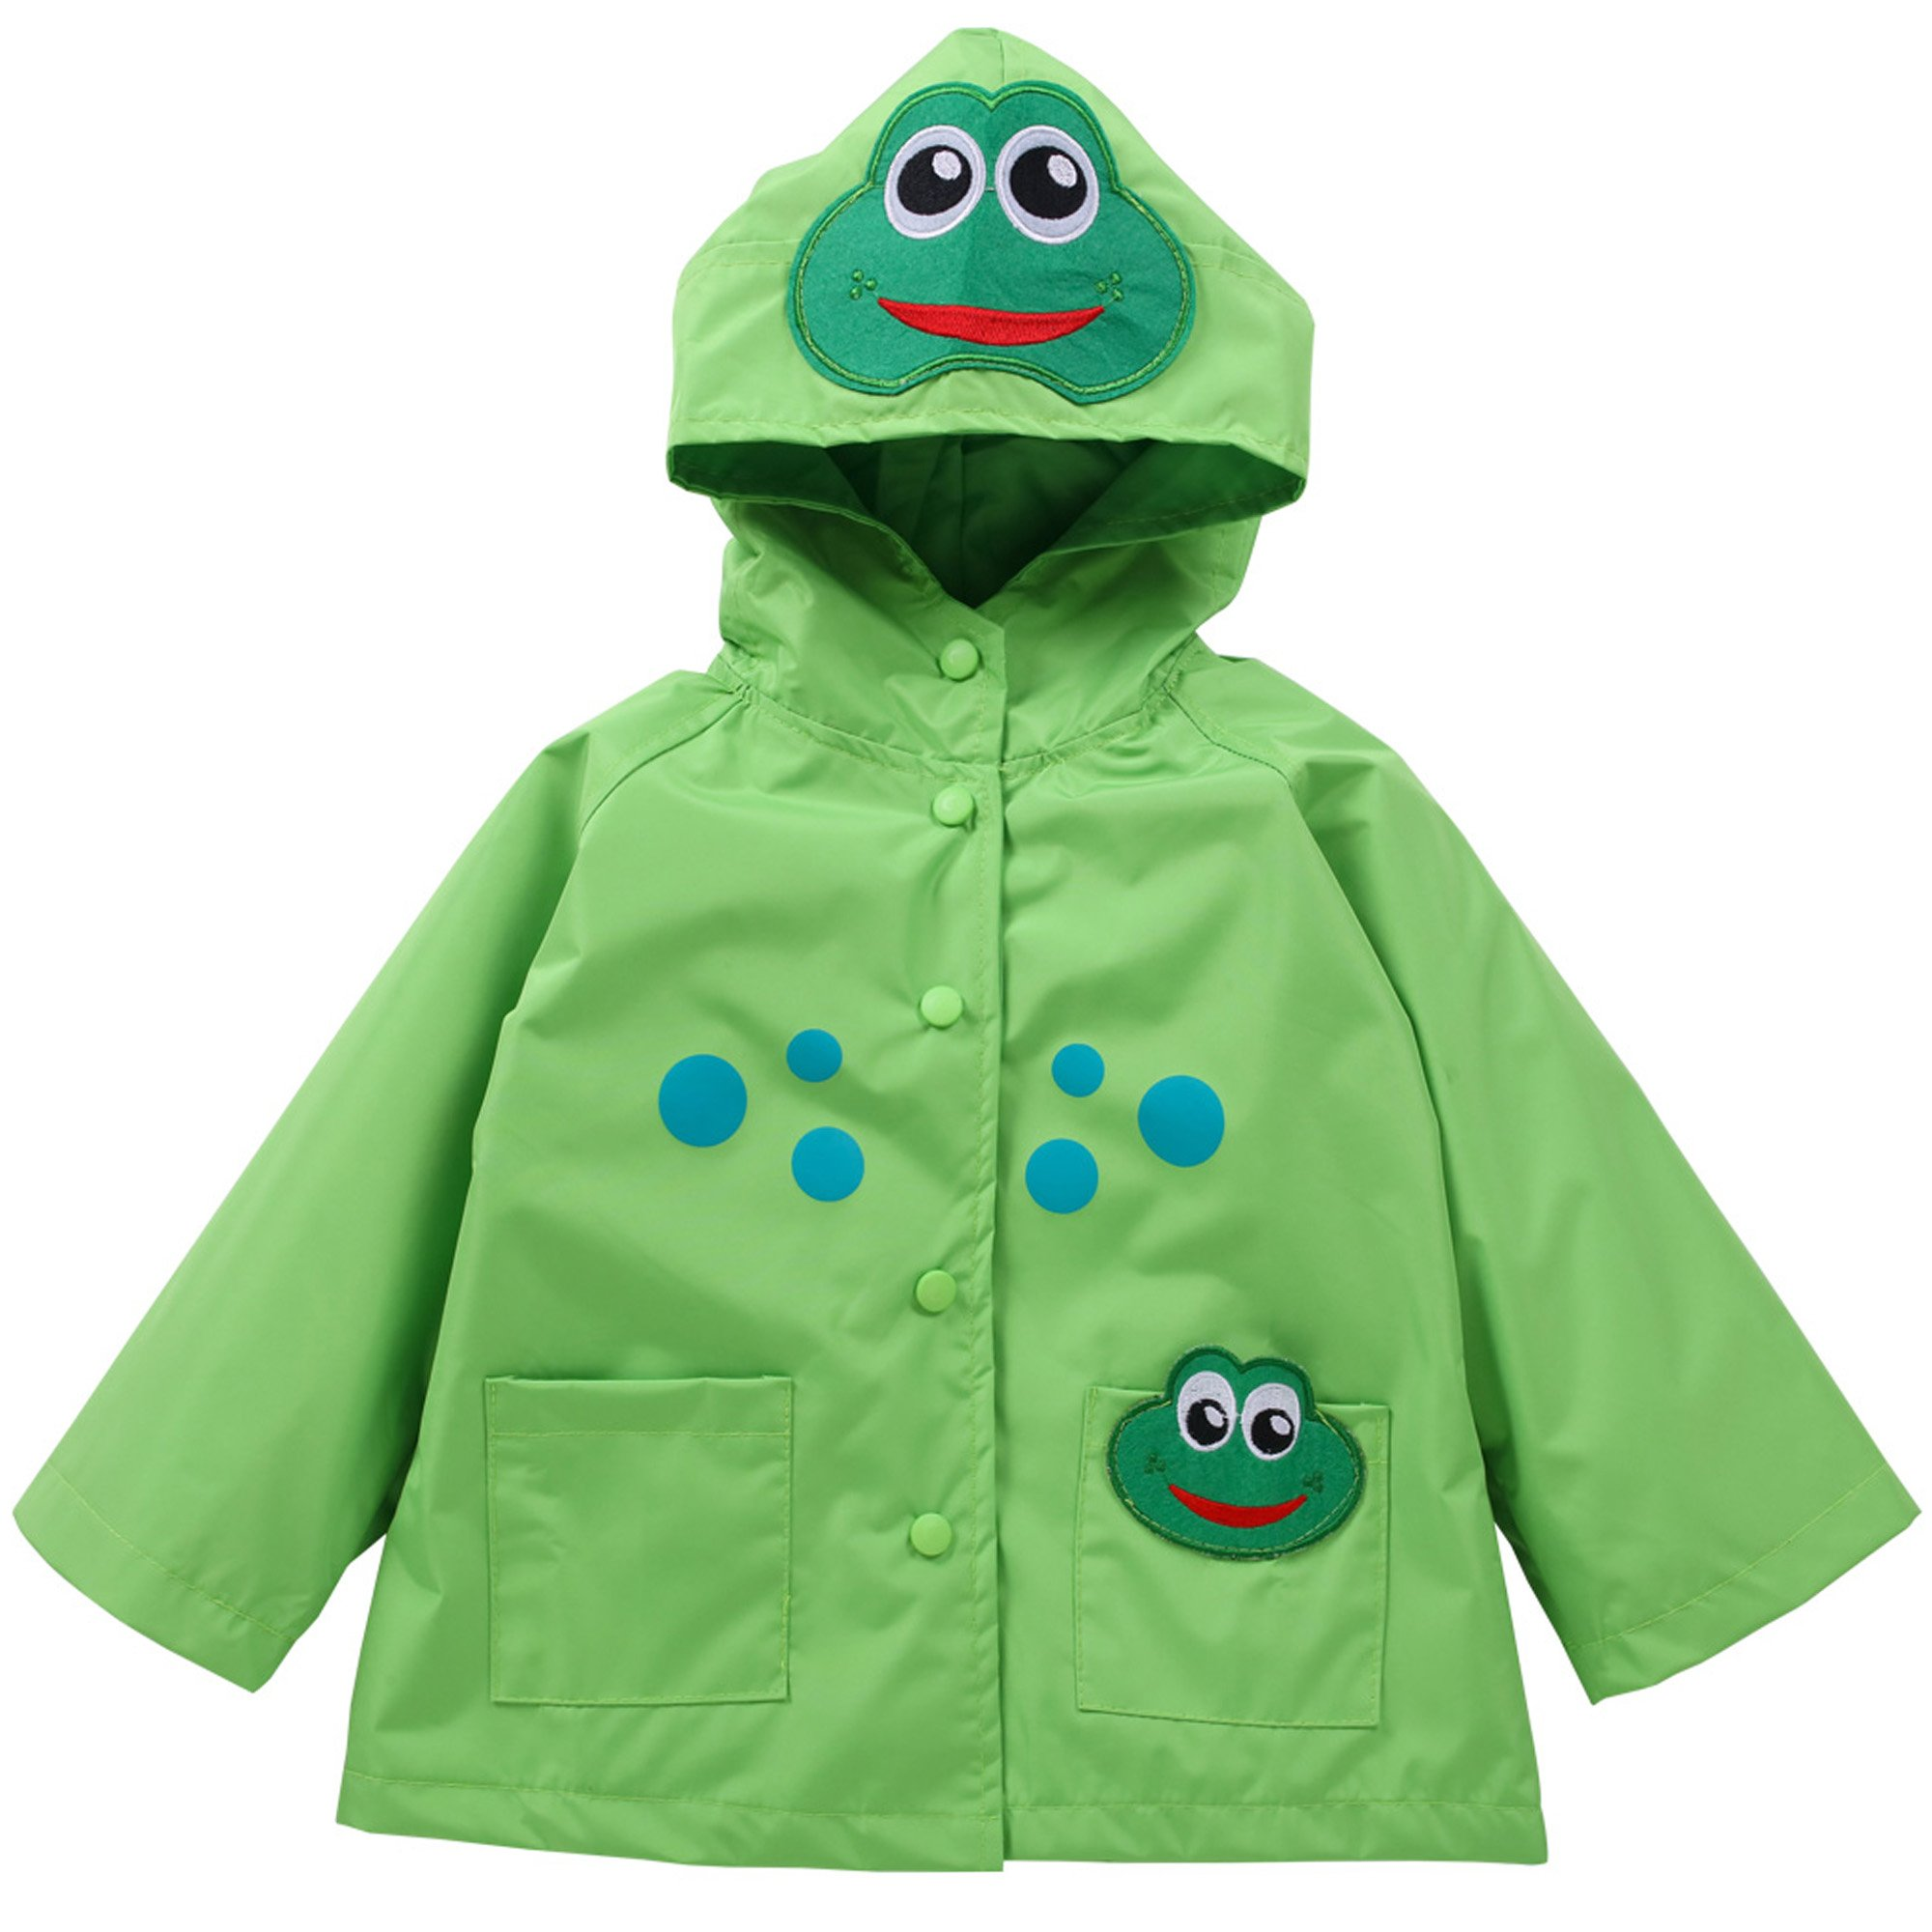 Waterproof Rainwear Windbreaker Hooded Raincoat Dirty Proof Cute Long Sleeve Outwear Jacket for Boys and Girls